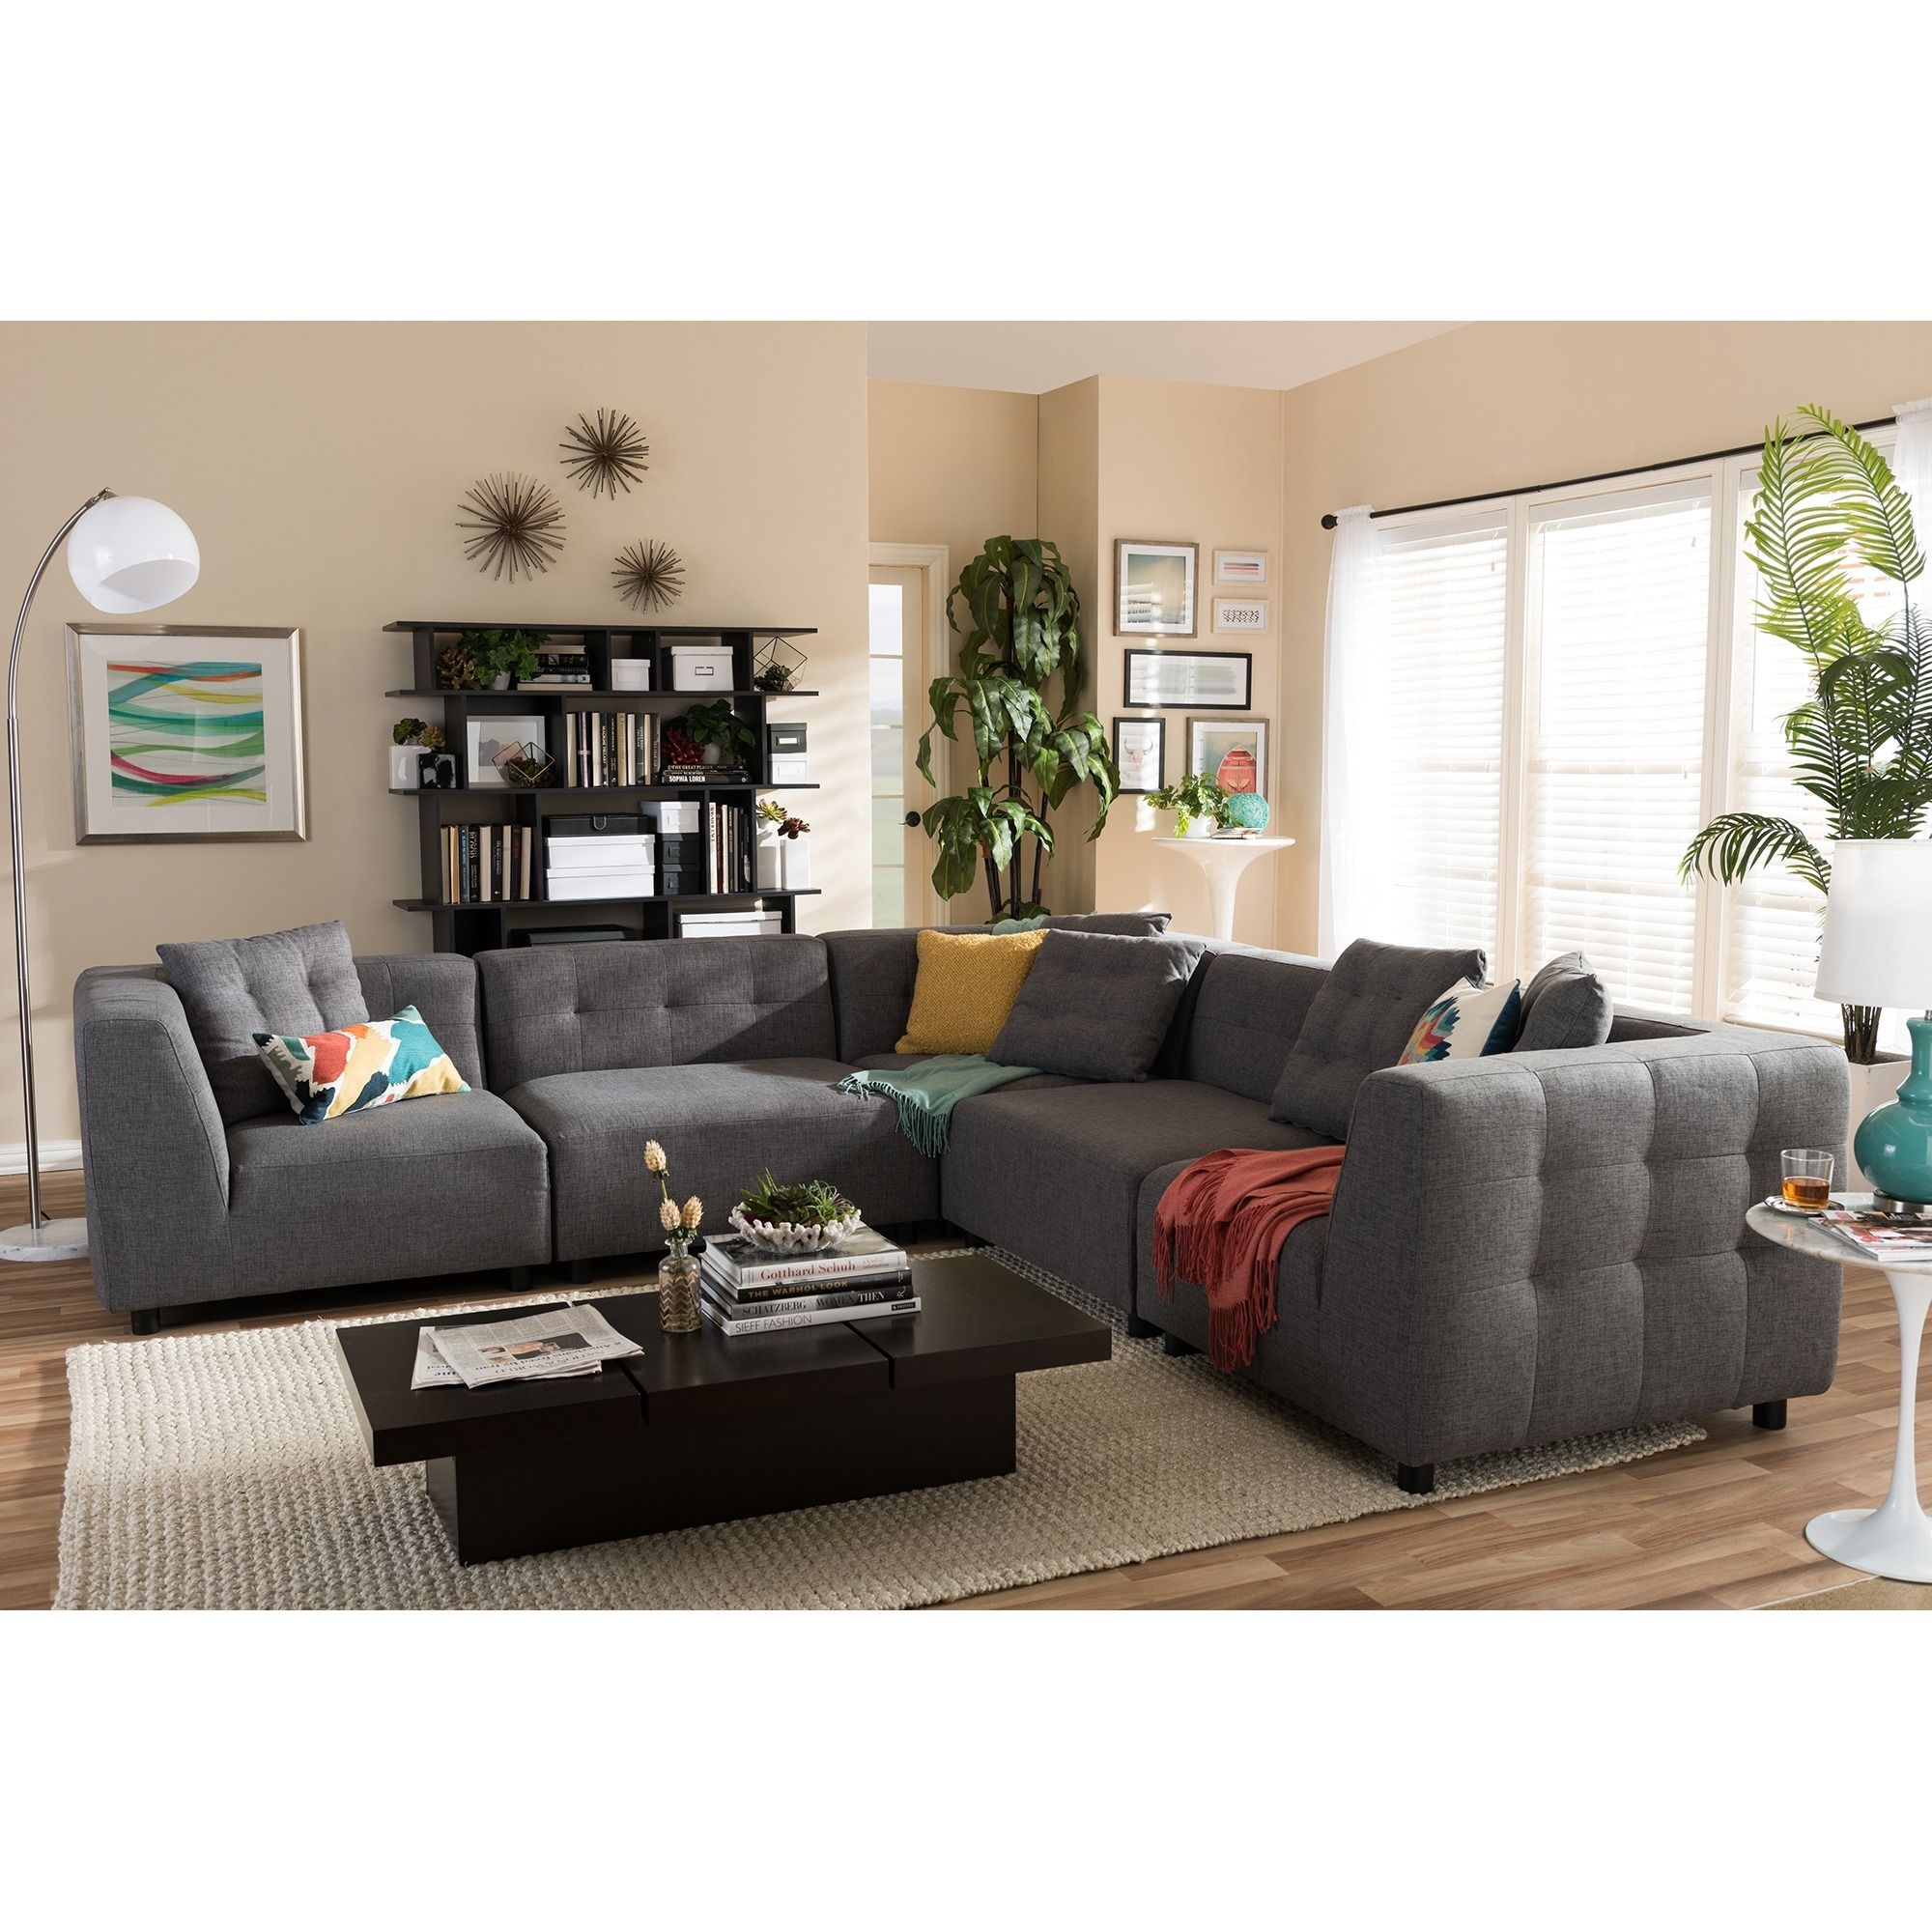 Amazing This Alcoa Sectional Sofa Consists Of Five Separate Pieces Pdpeps Interior Chair Design Pdpepsorg